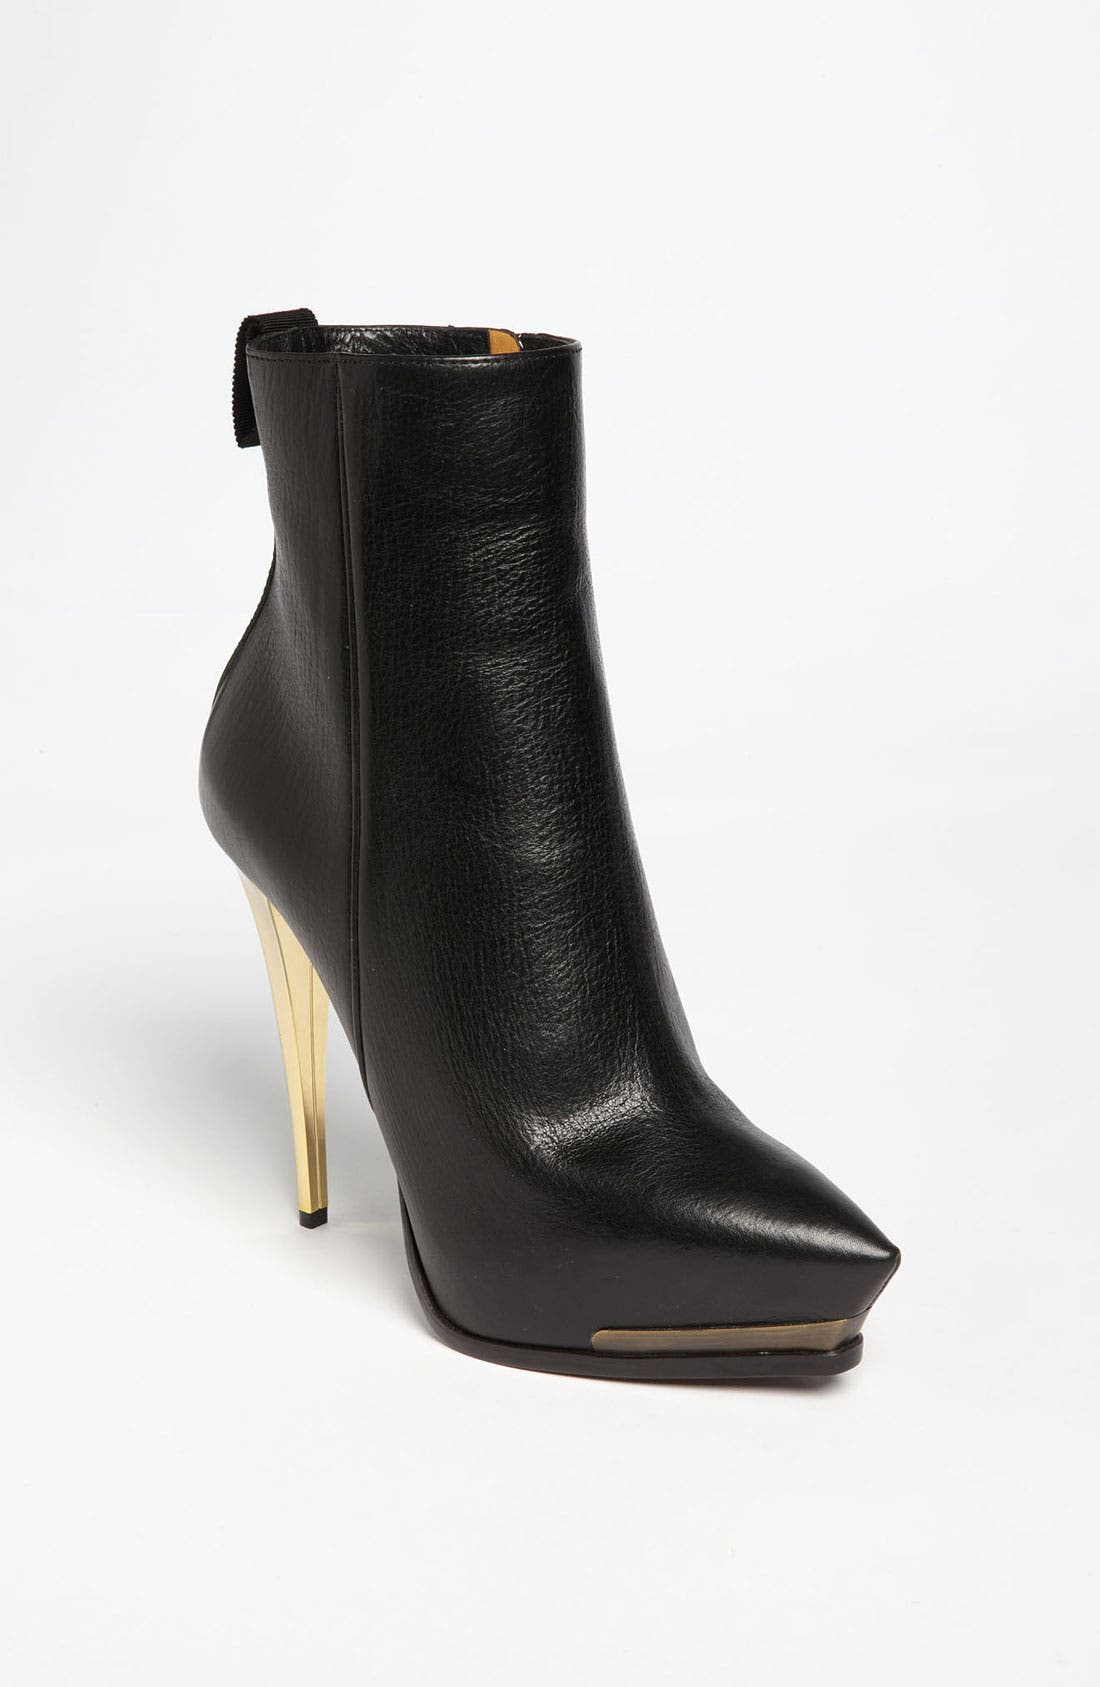 Main Image - Lanvin Metal Heel Boot